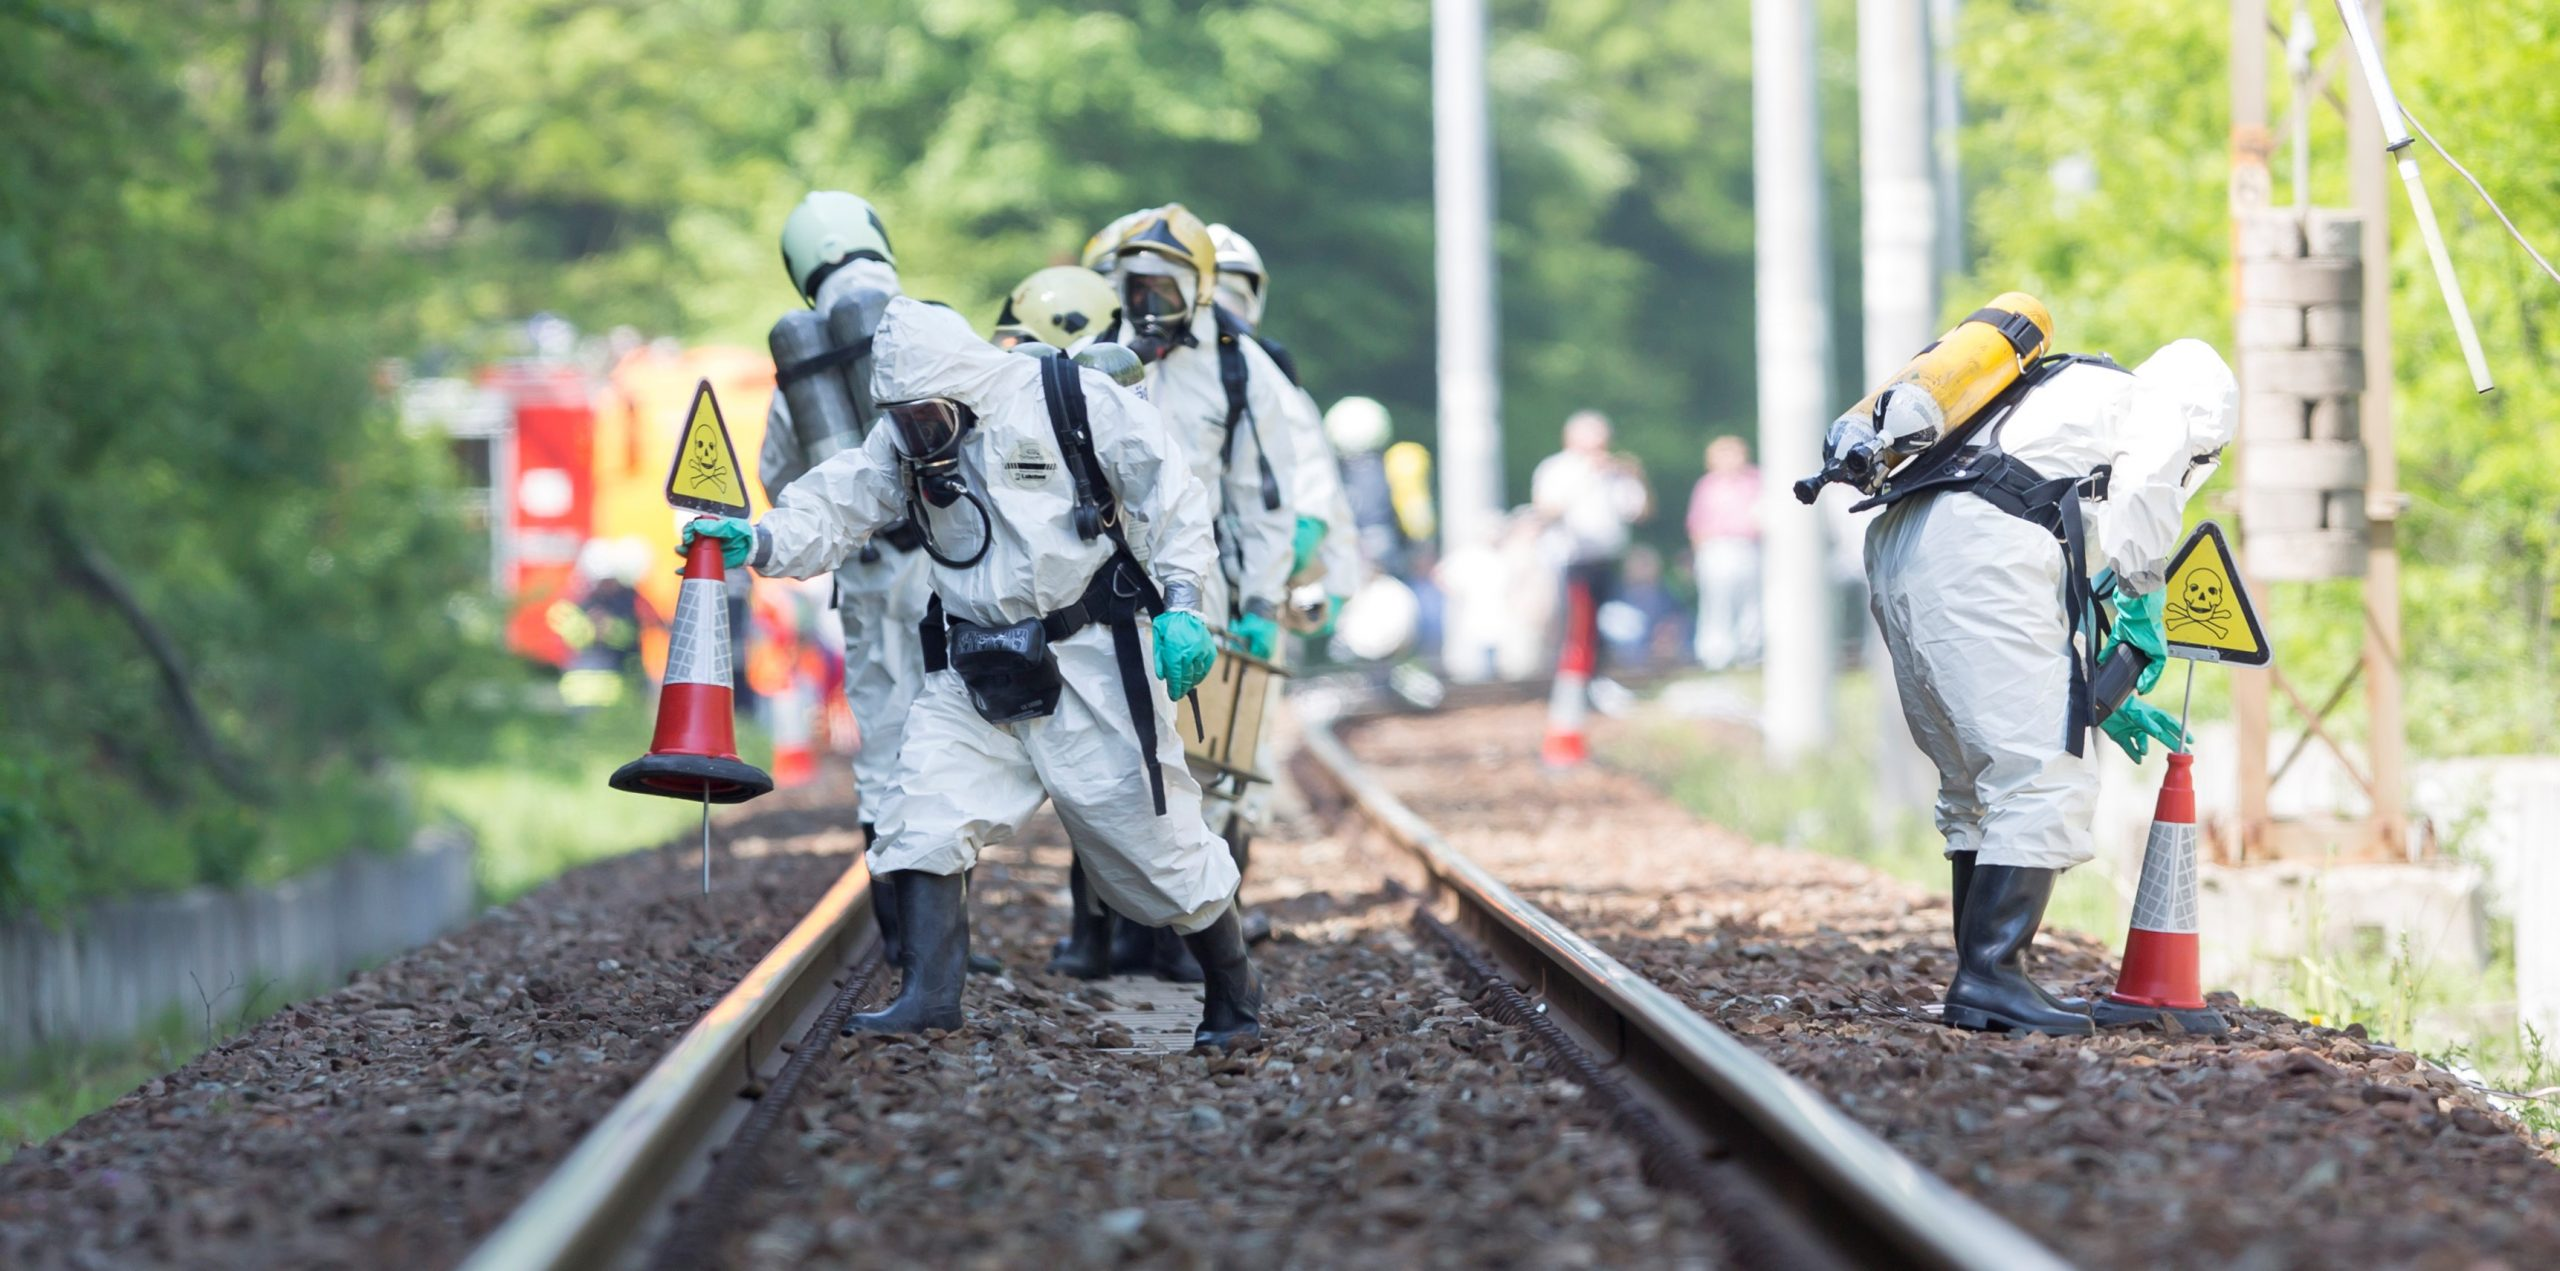 Sofia, Bulgaria - May 19, 2015: A team working with toxic acids and chemicals is approaching a chemical cargo train crash near Sofia. Teams from Fire department are participating in an emergency training with spilled toxic and flammable materials.